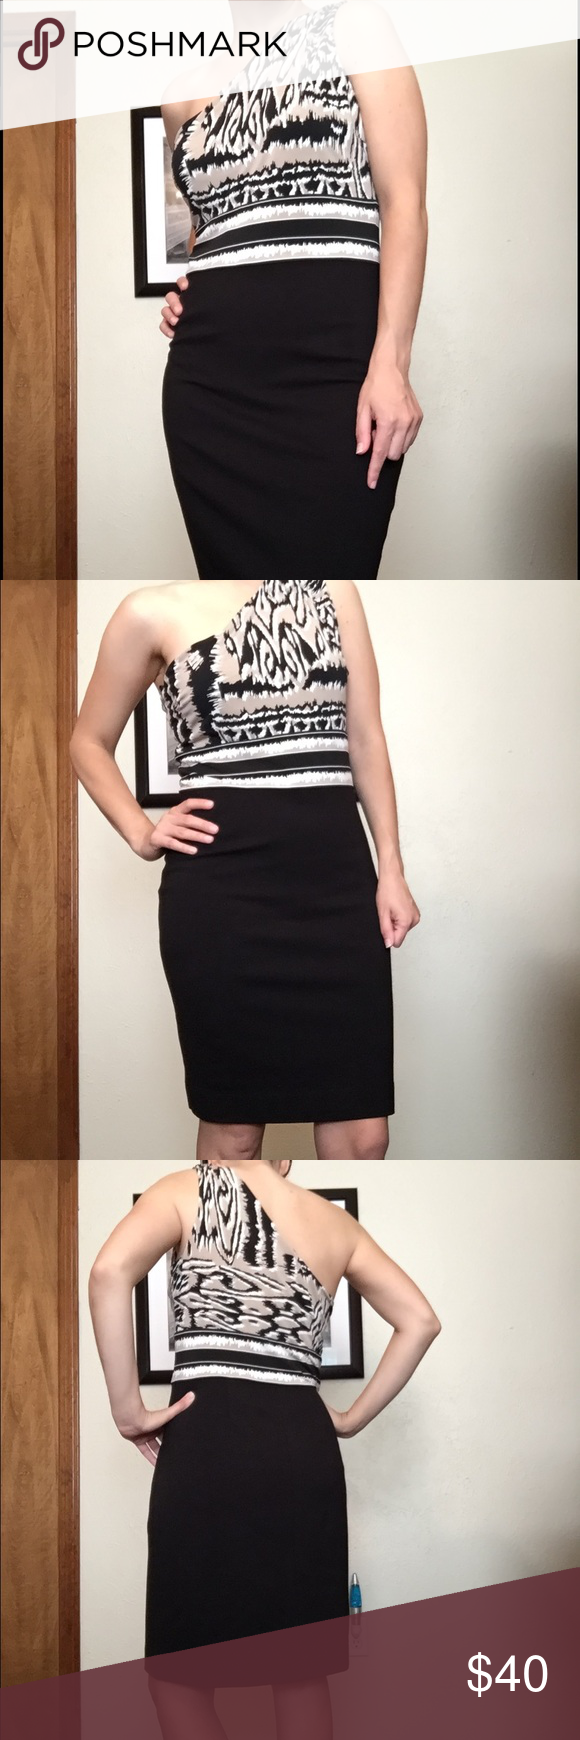 BCBG dress Very classic one shoulder fitted dress with beautiful body hugging design. Decently fitted around lower body but not too tight. Worn once to reception. No stains, smells, wear. Dry cleaned. Very flattering on anyone. I was about 8-10 size and this fit great. Mercari for less! Just dropped price by $7 on PM! BCBGMaxAzria Dresses One Shoulder